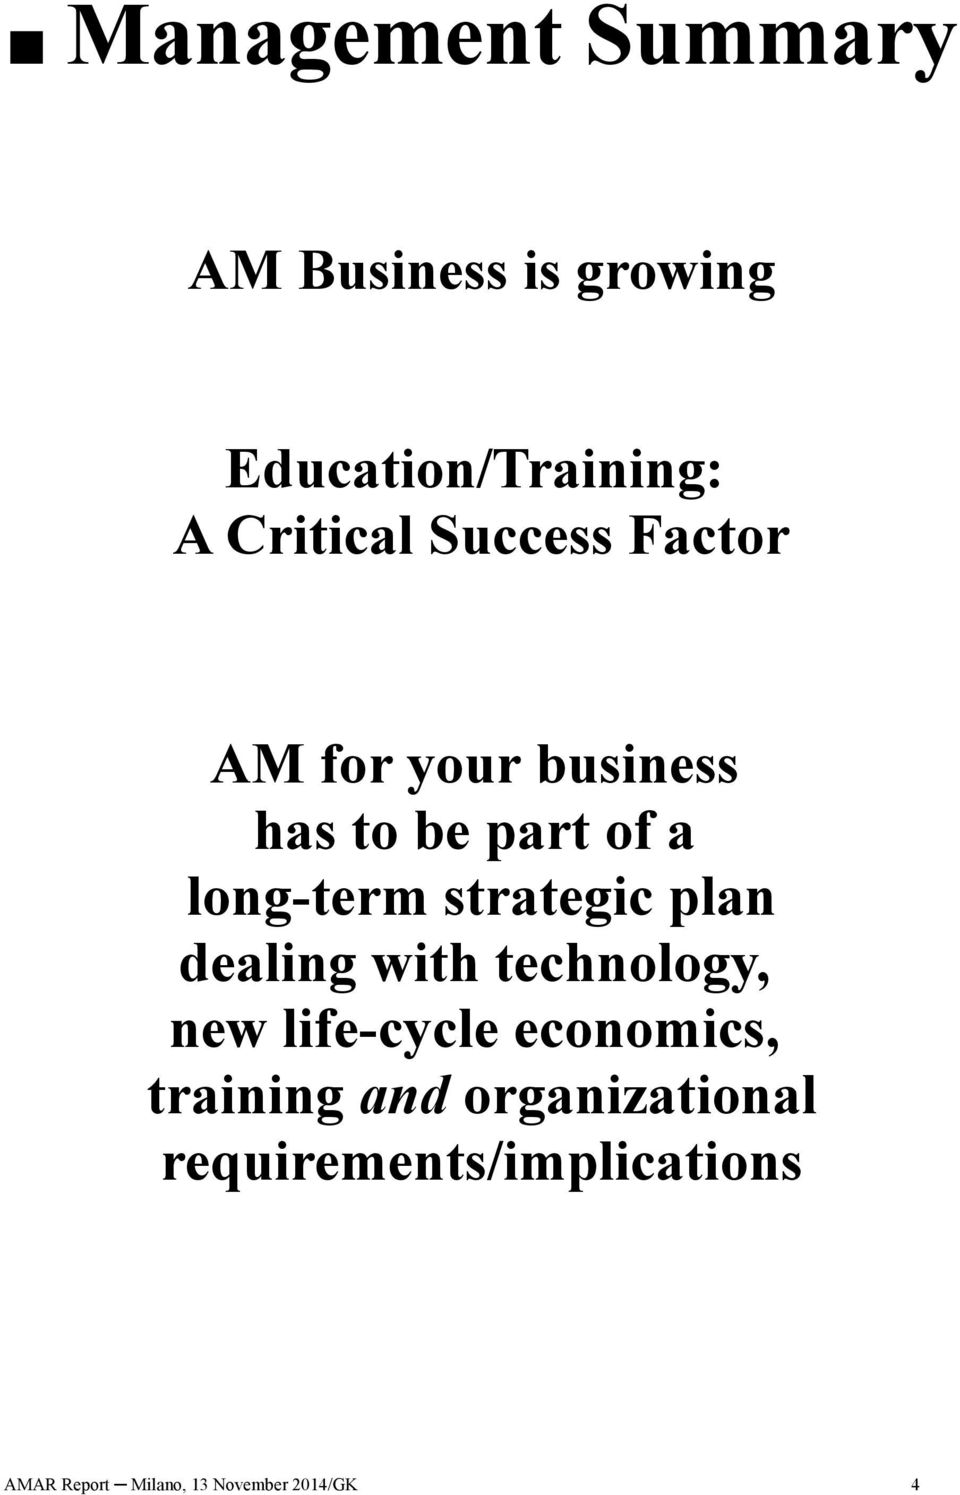 strategic plan dealing with technology, new life-cycle economics, training